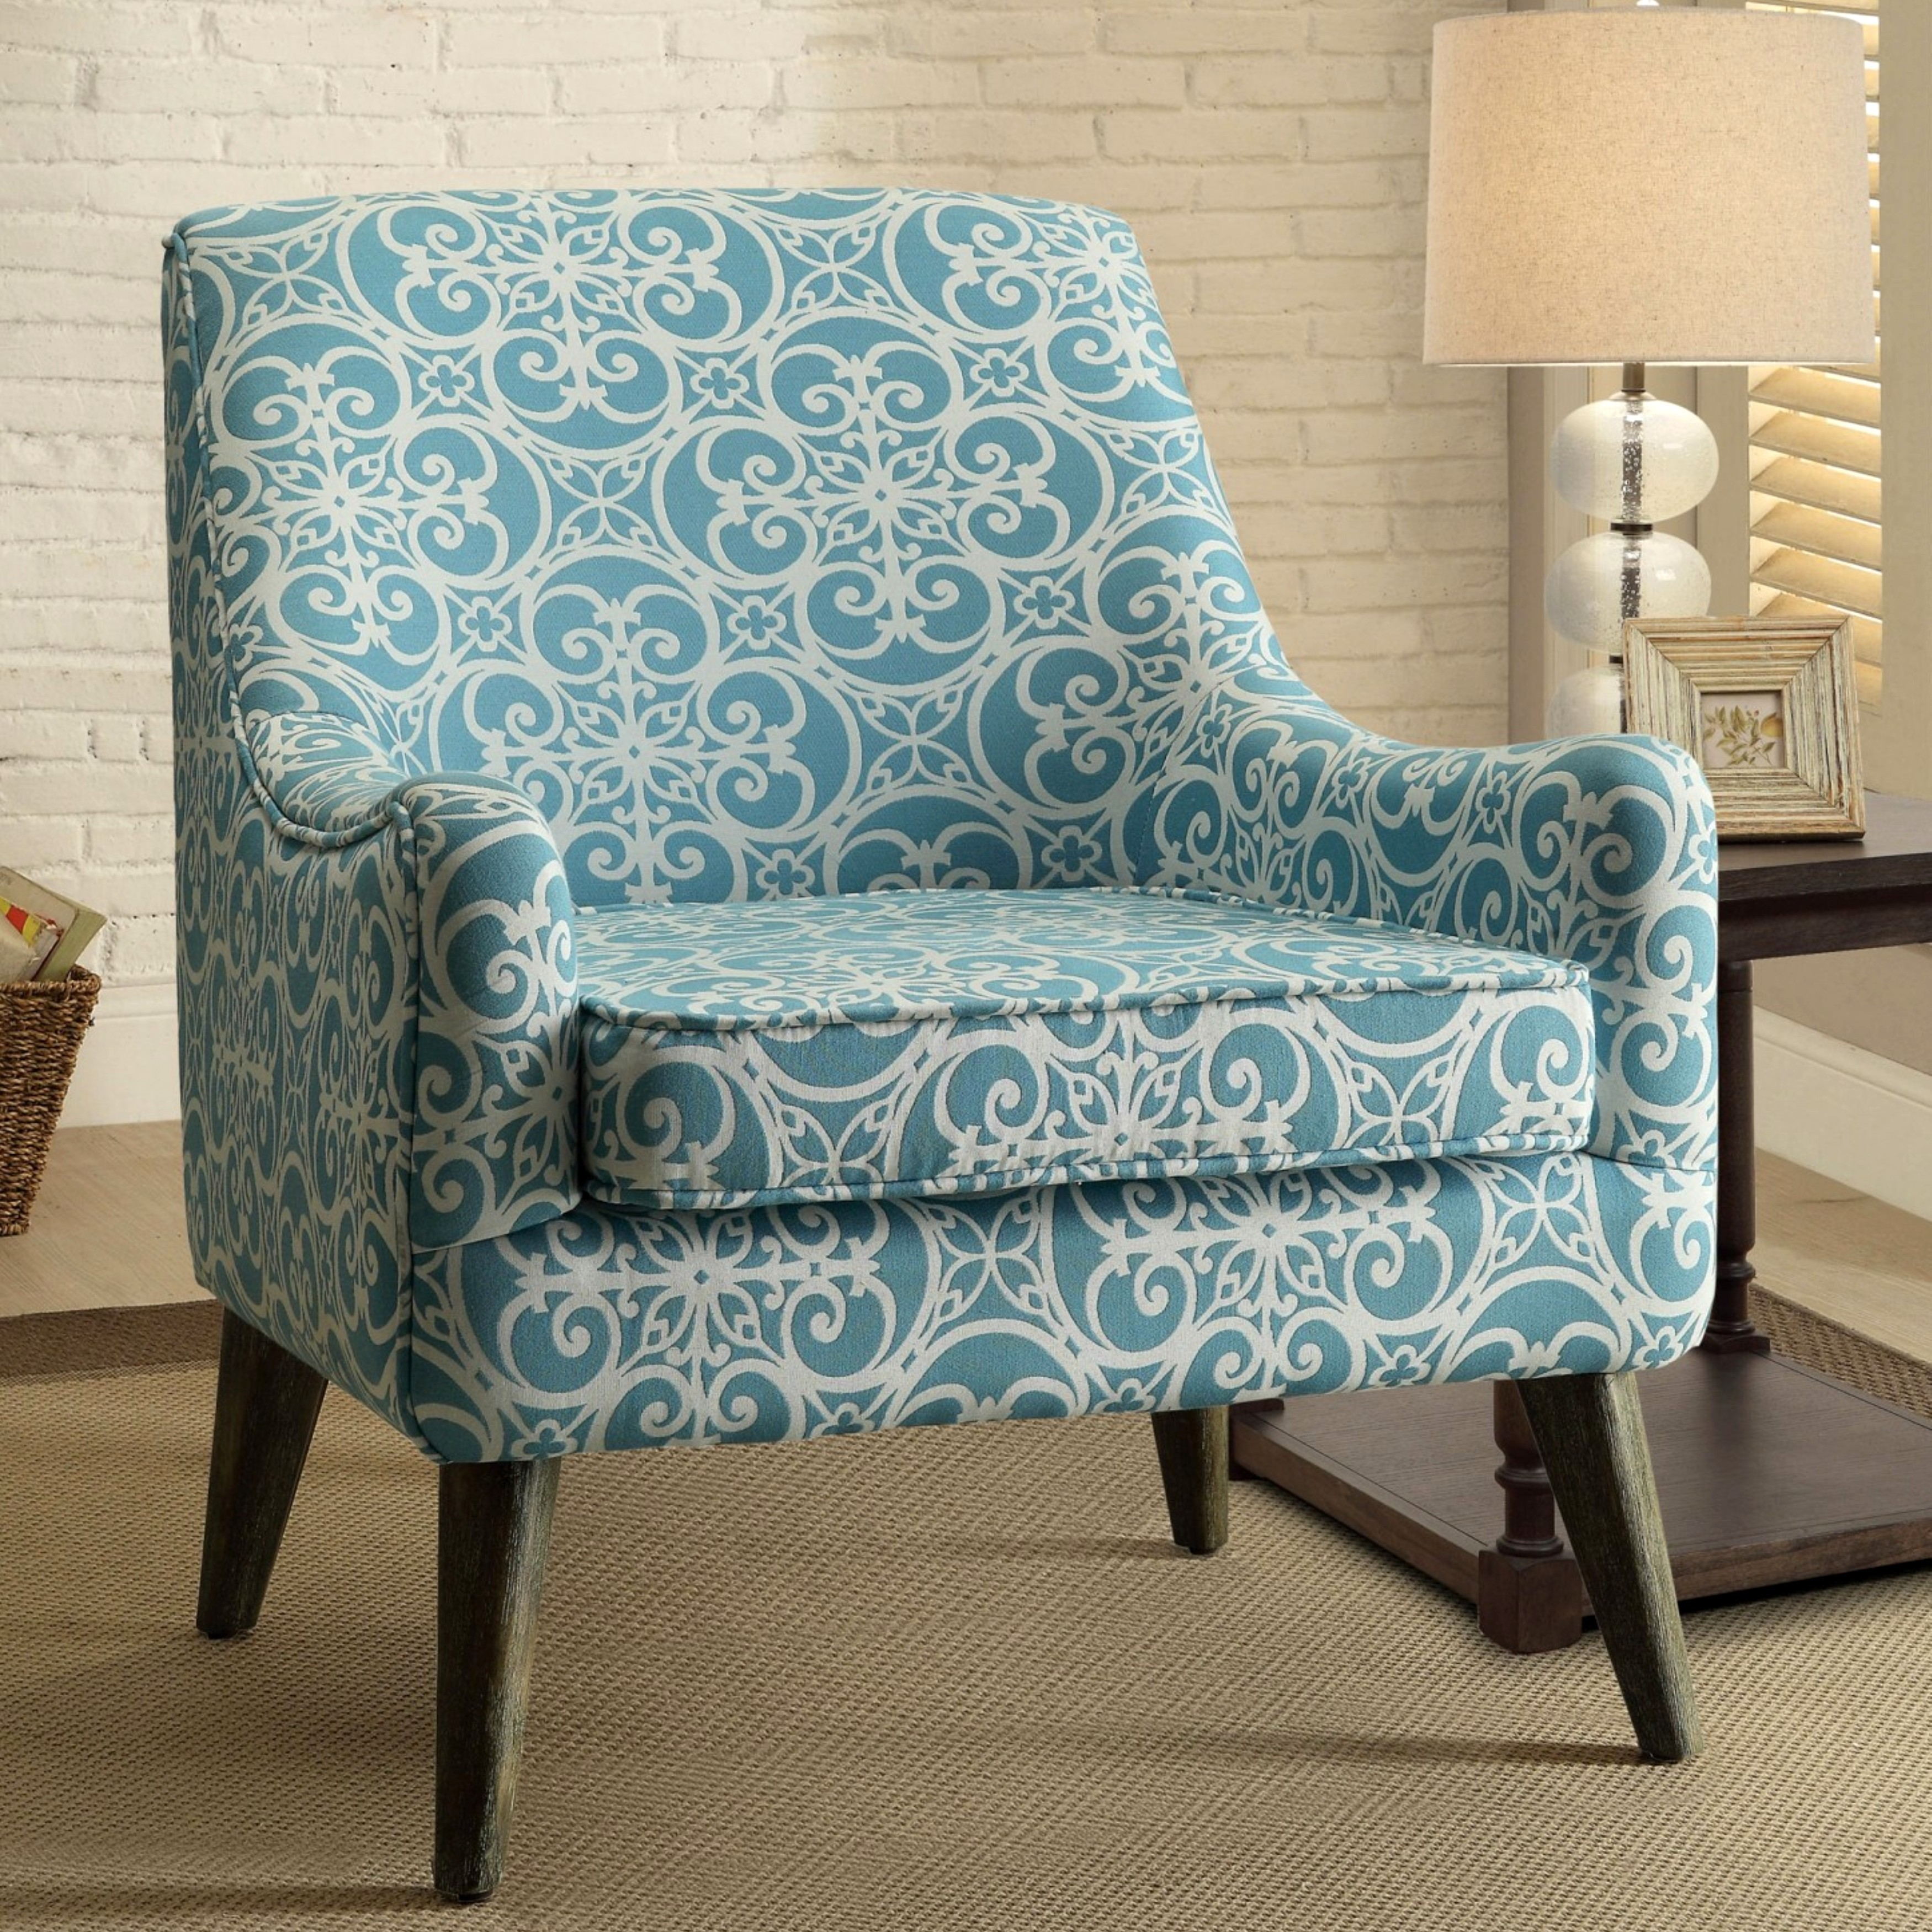 Blue Patterned Chair Monoco Estate Blue Patterned Living Room Accent Chair